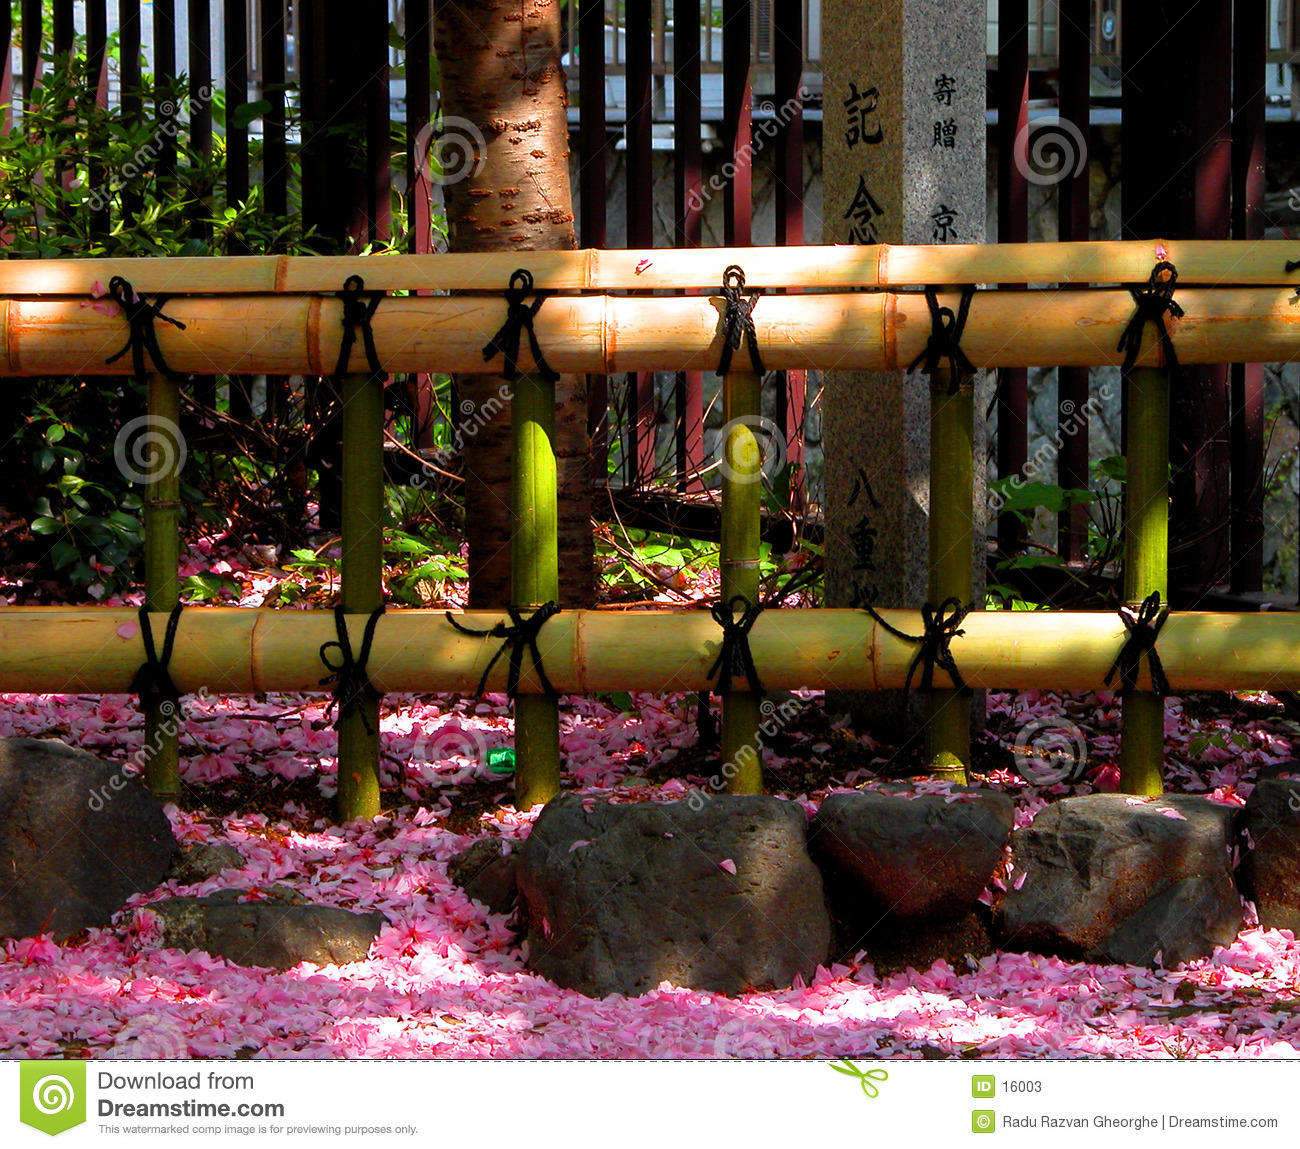 Fence and petals